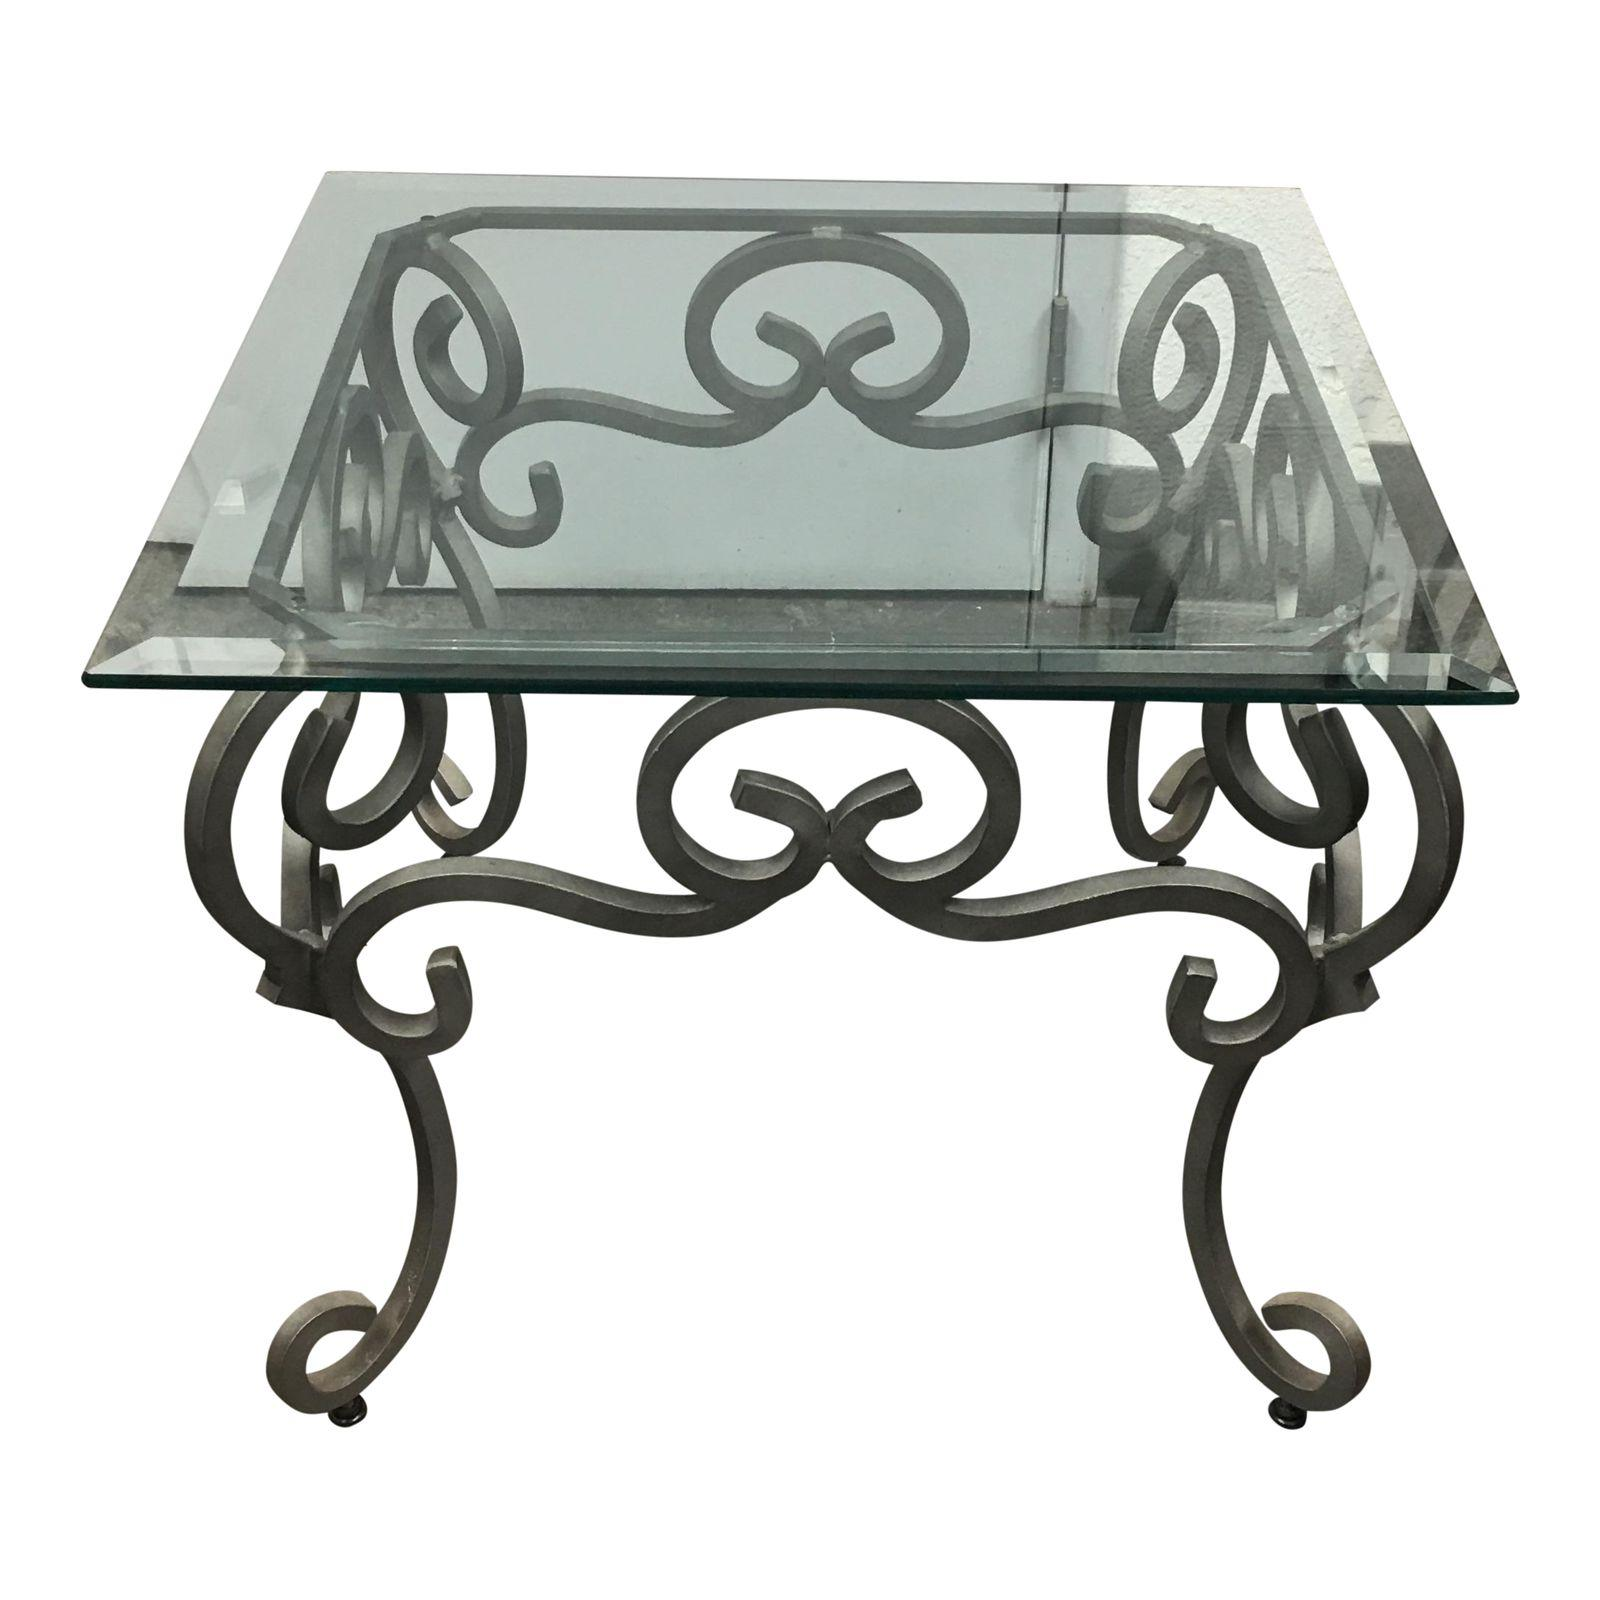 Ornate Iron Base Side Table With Glass Top Design Plus Gallery